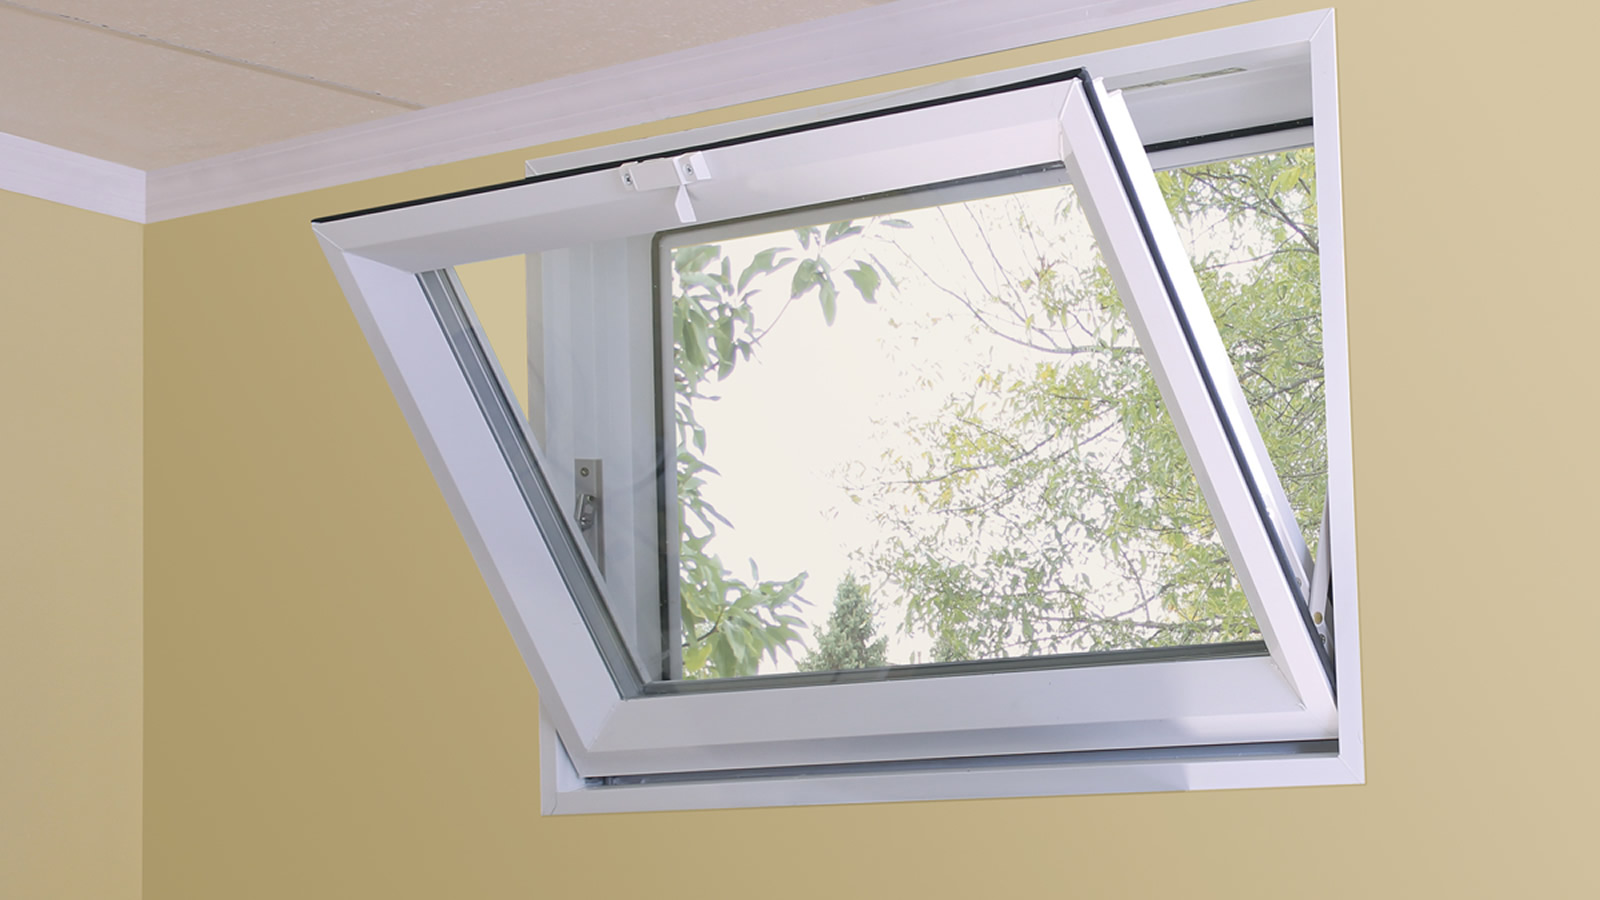 Basement windows waldorf replacement windows see thru for Basement windows